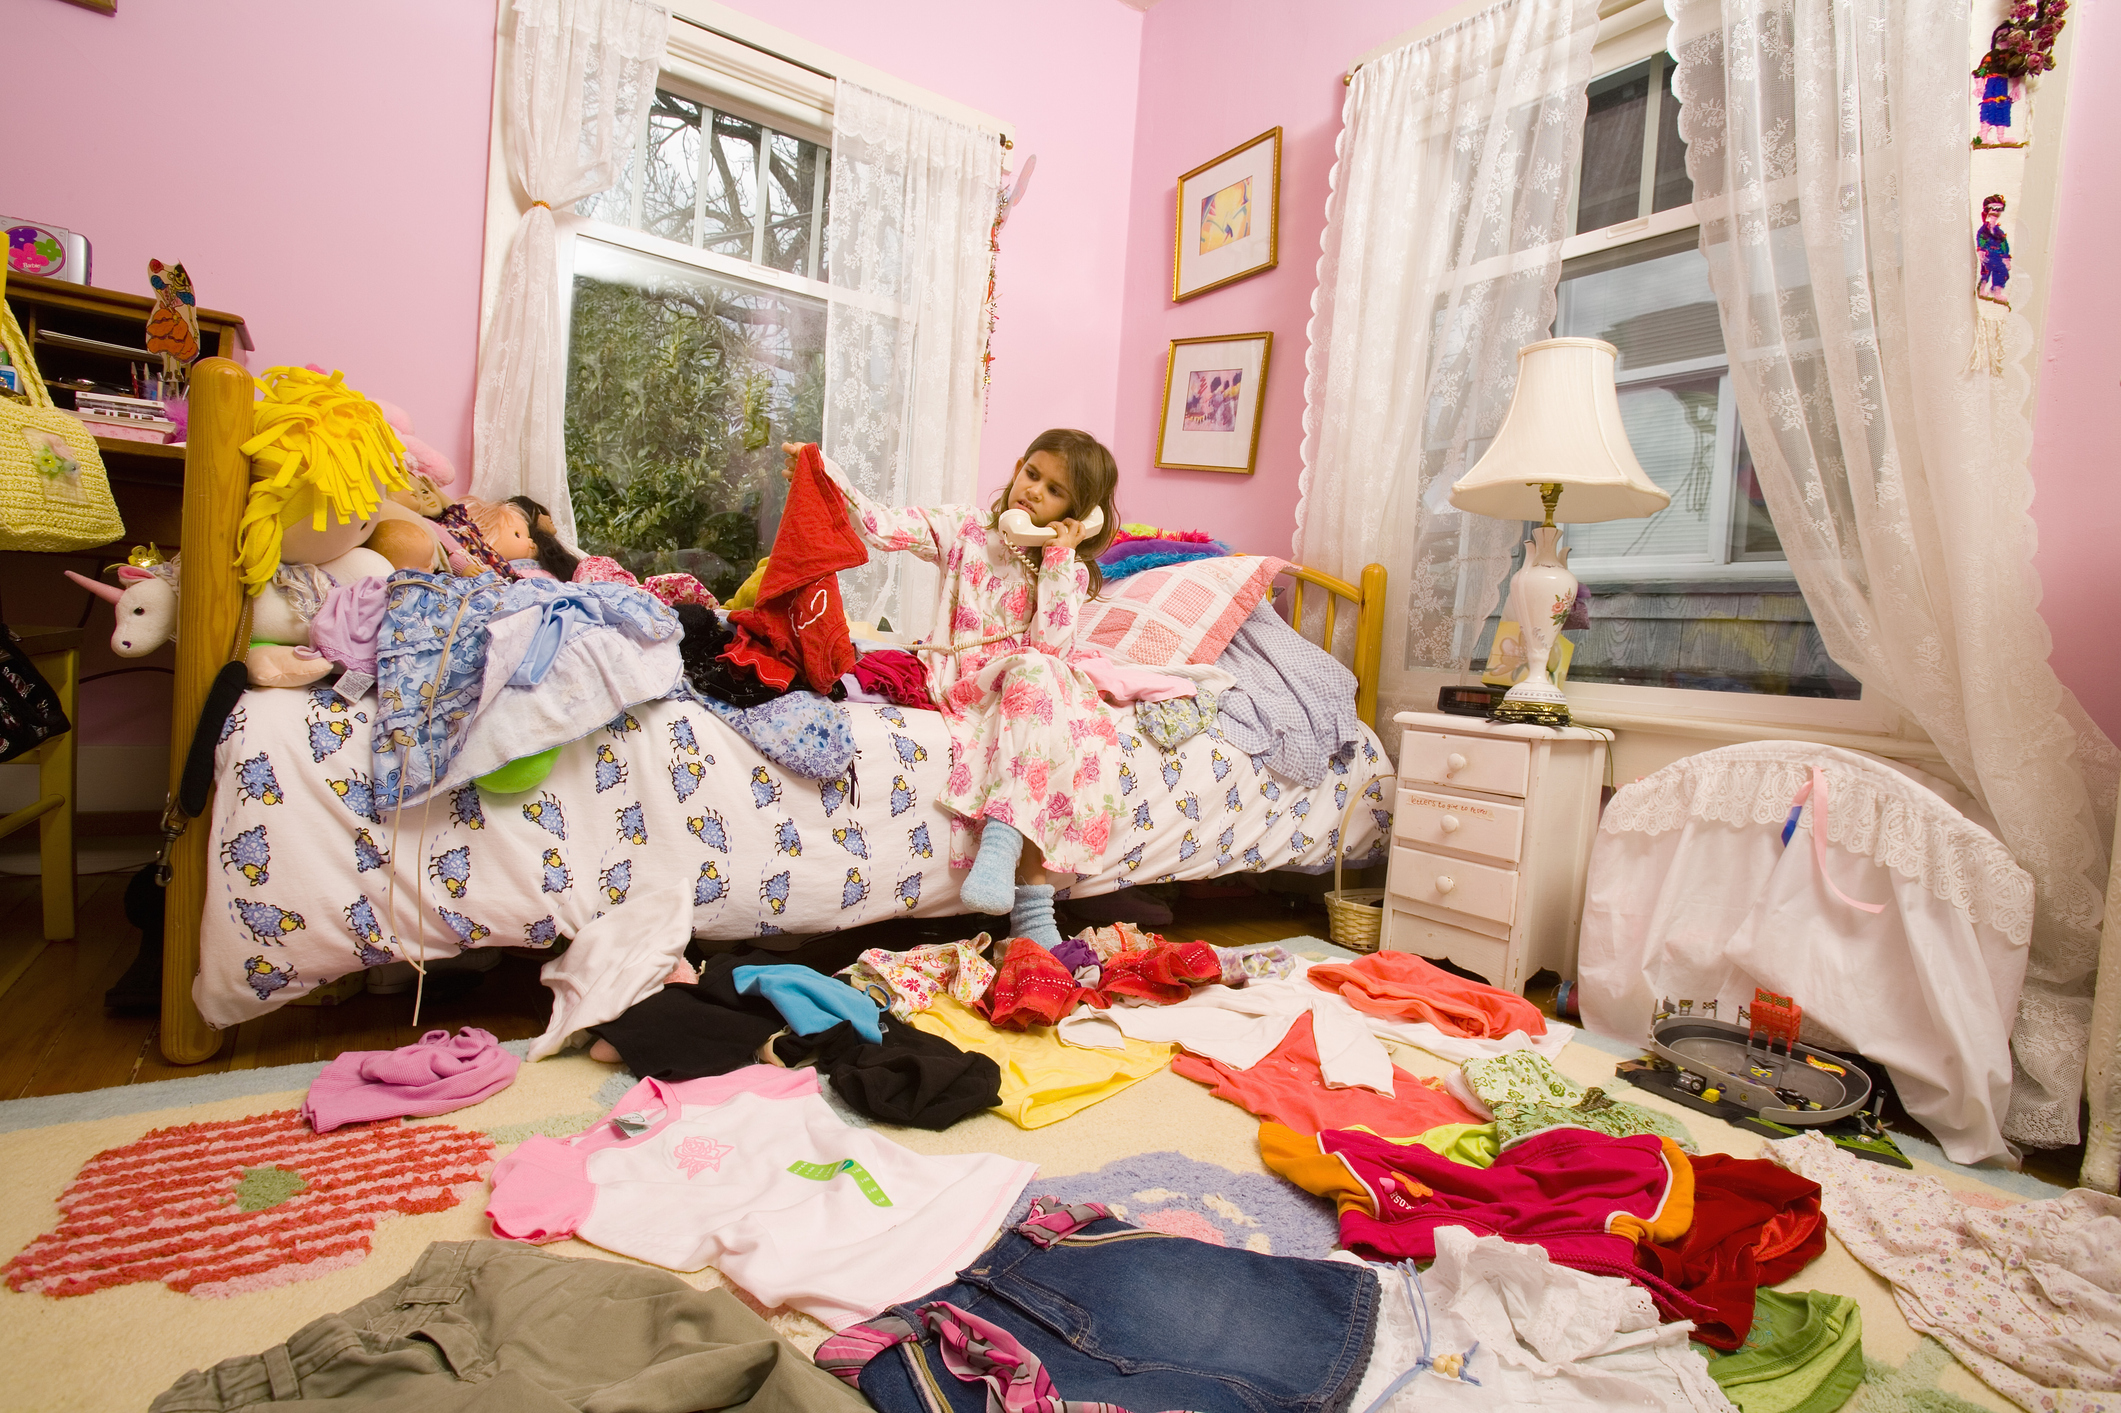 A very messy bedroom that is in need of a through cleaning and organization  effort. 31 1 parent organize cure messy kids slideshow 31 girl bedroom